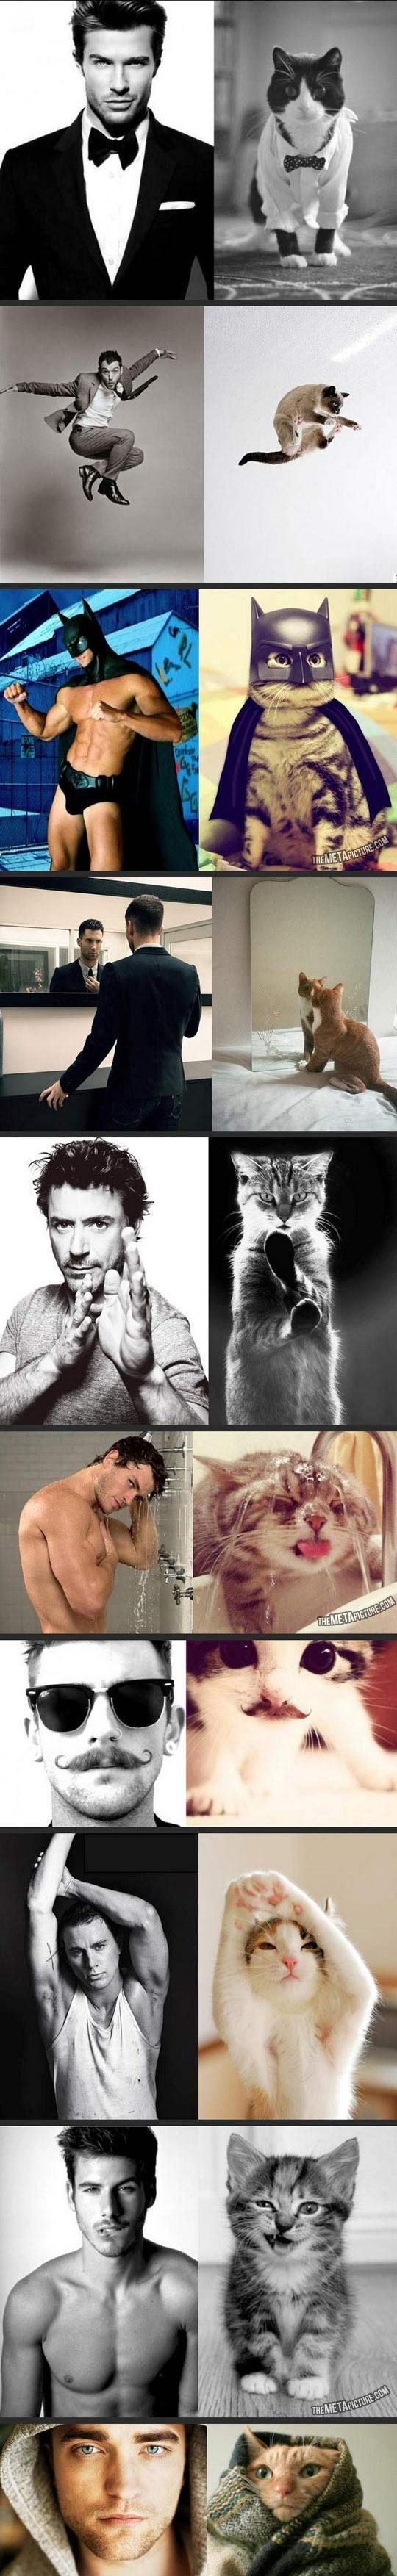 Gee wiz this made me laugh!! male models and cats